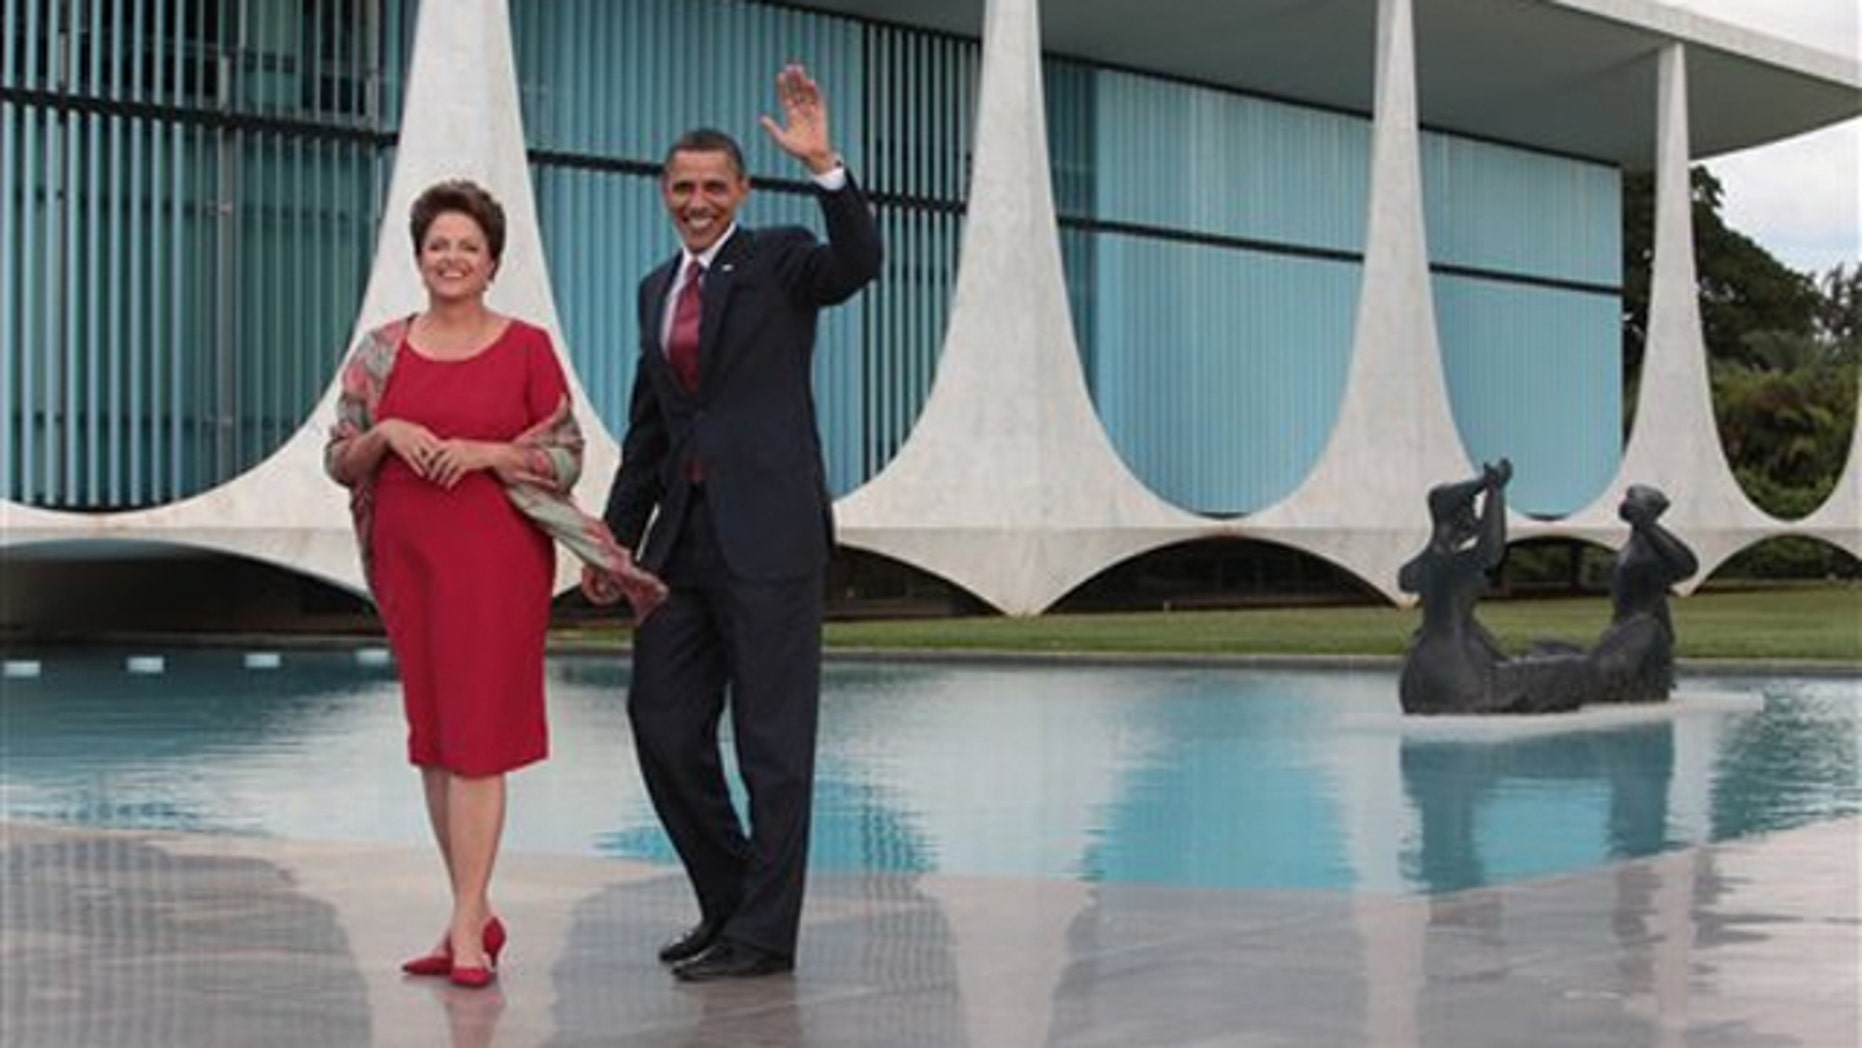 Saturday: President Obama, accompanied by Brazil's President Dilma Rousseff, waves as he arrives in Brasilia, Brazil.